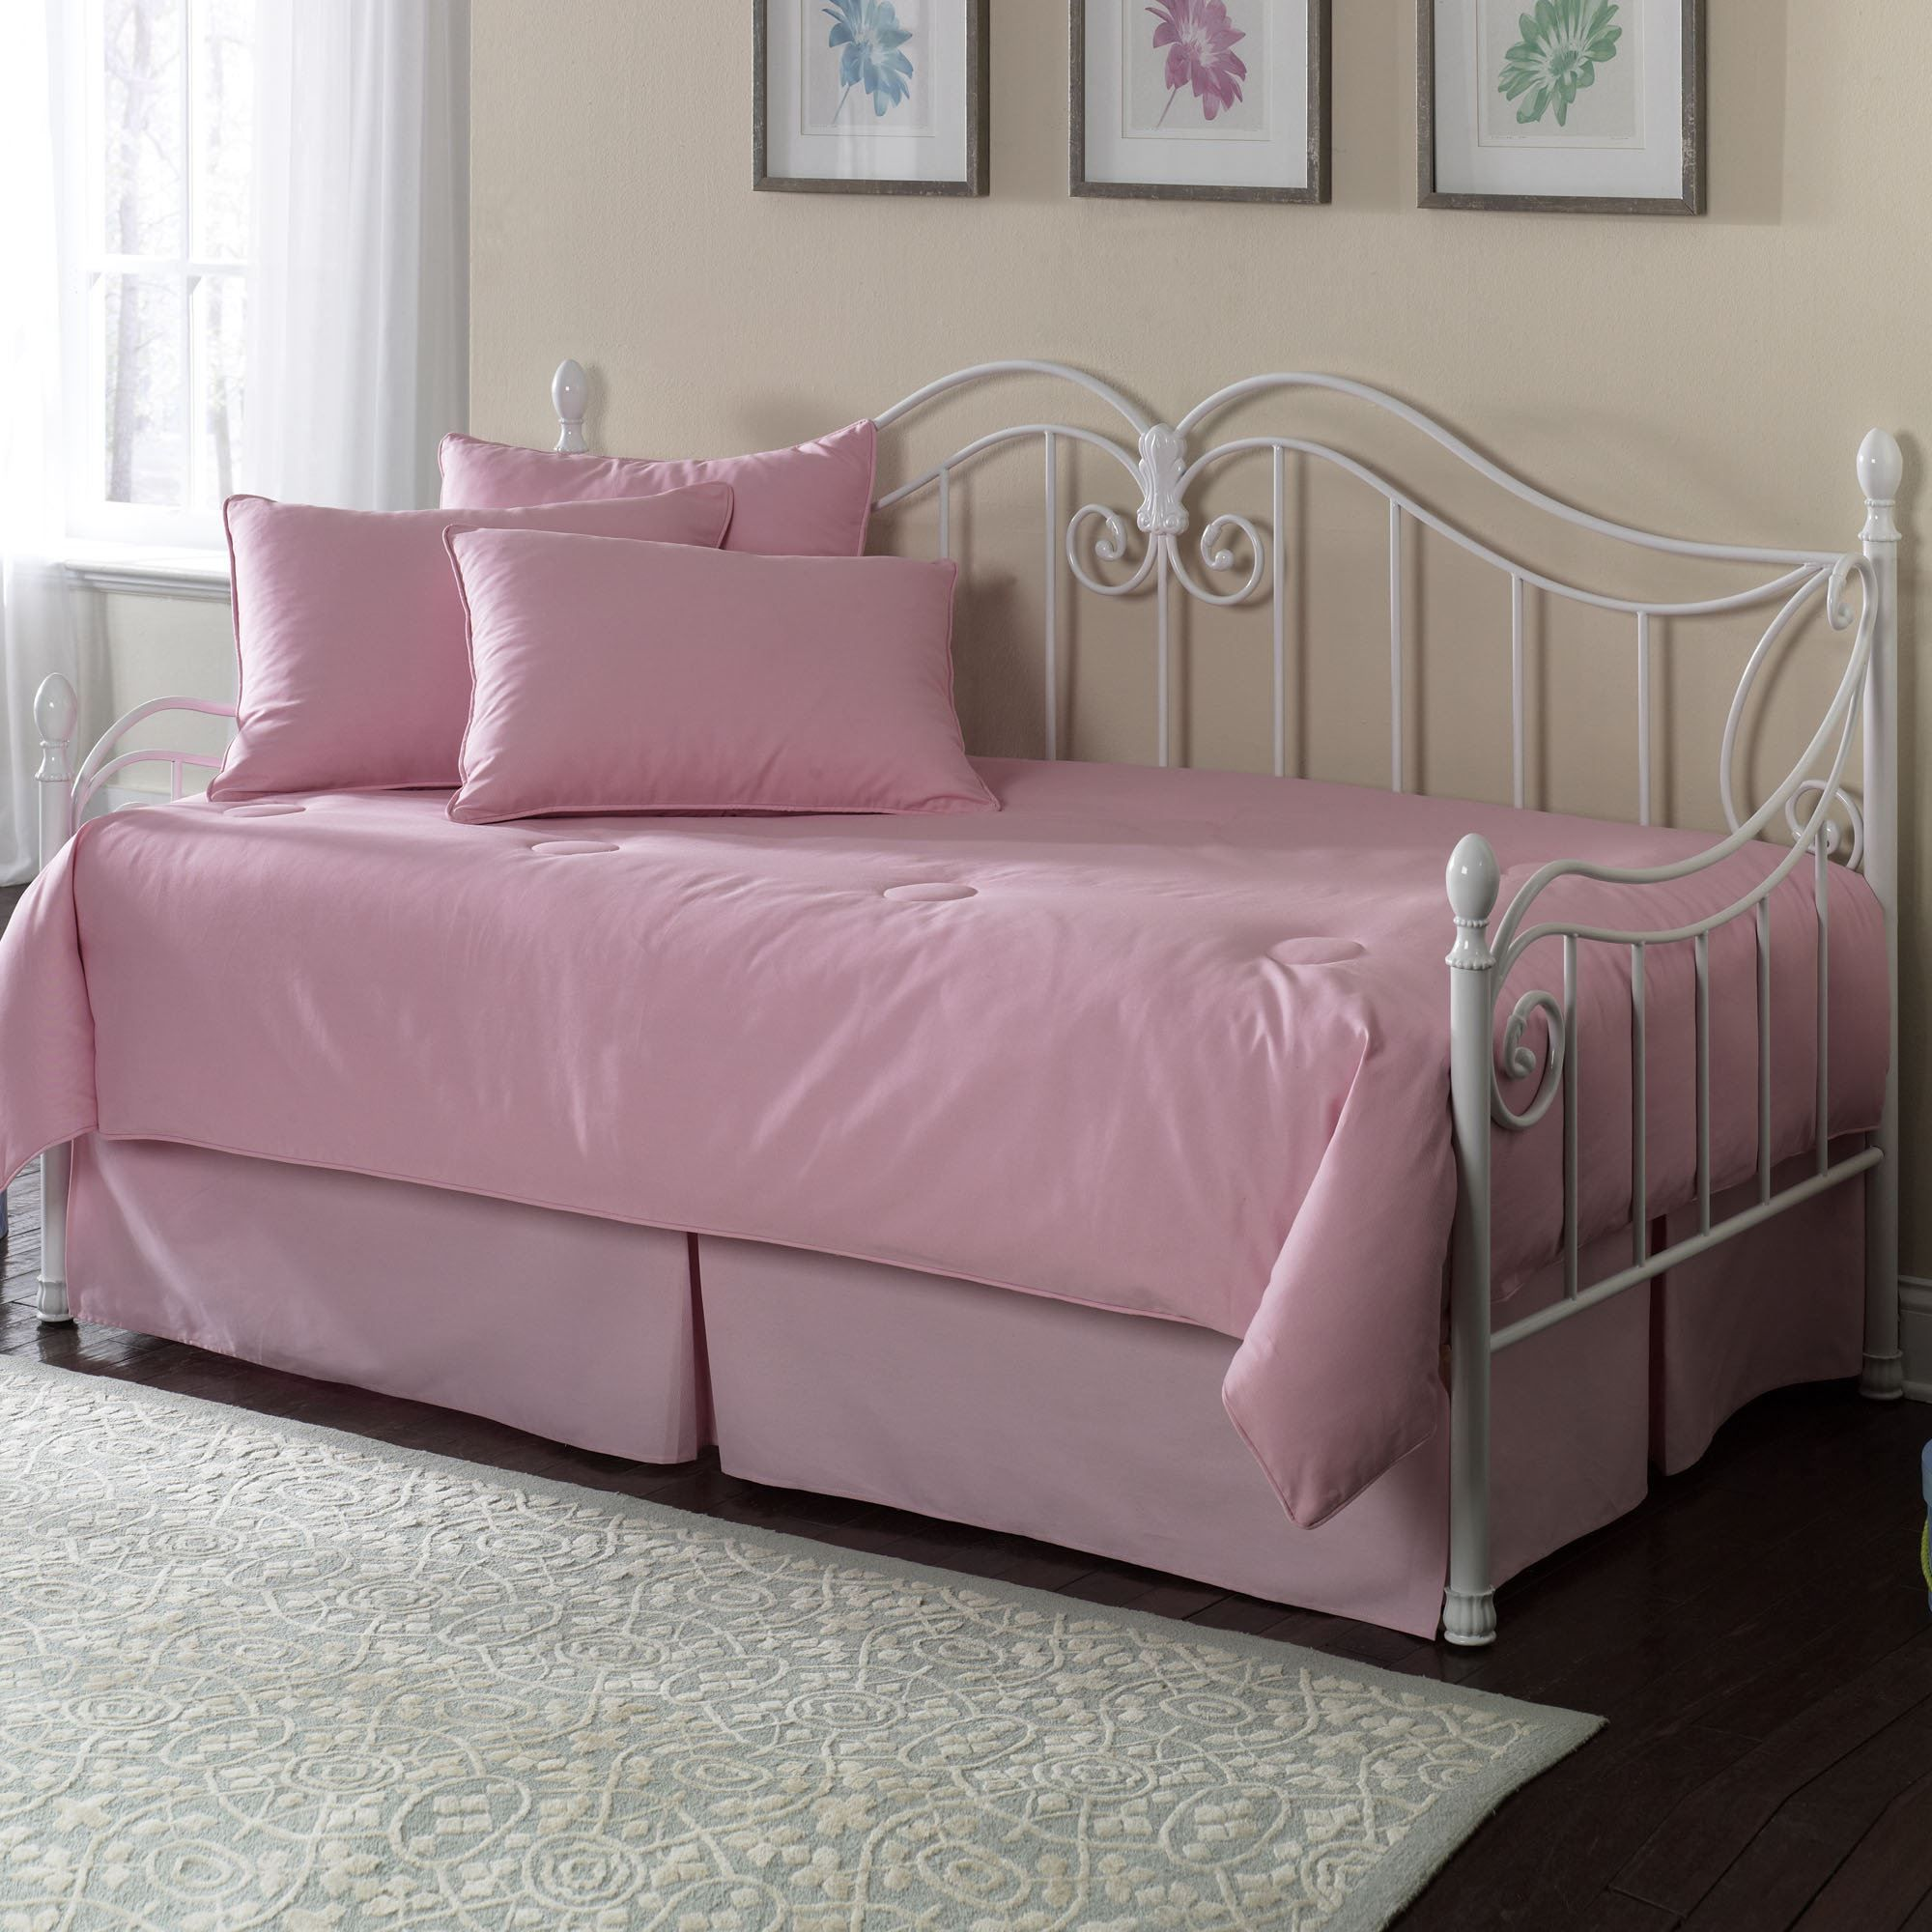 awesome metal daybeds with trundles and pink cushions daybeds